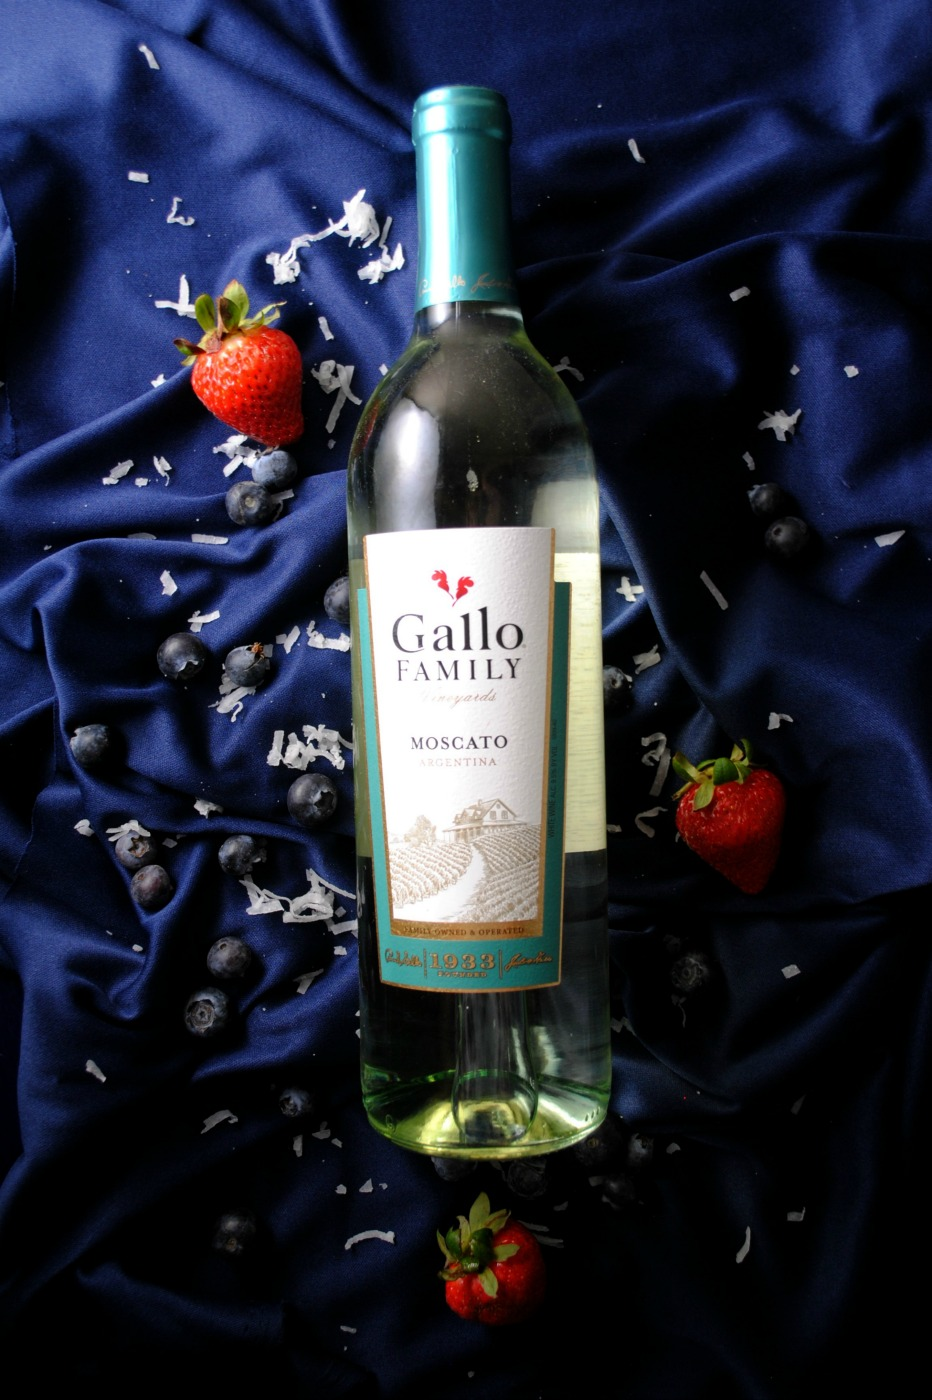 moscato VianneyRodriguez sweetlifebake Patriotic Moscato Gelatin Shots sponsored moscato cocktails holiday recipes gallo family vineyards cocktails cocktail friday 2